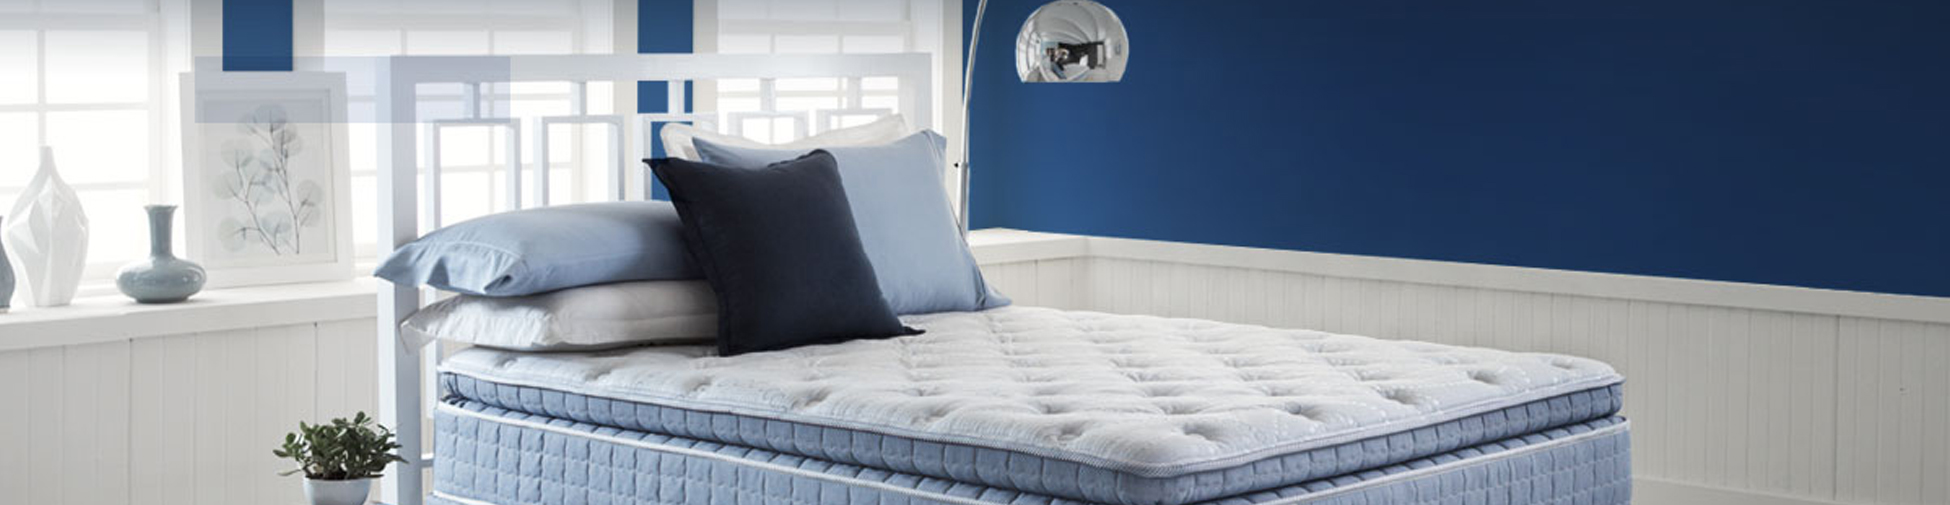 Serta Bedding Photo 04